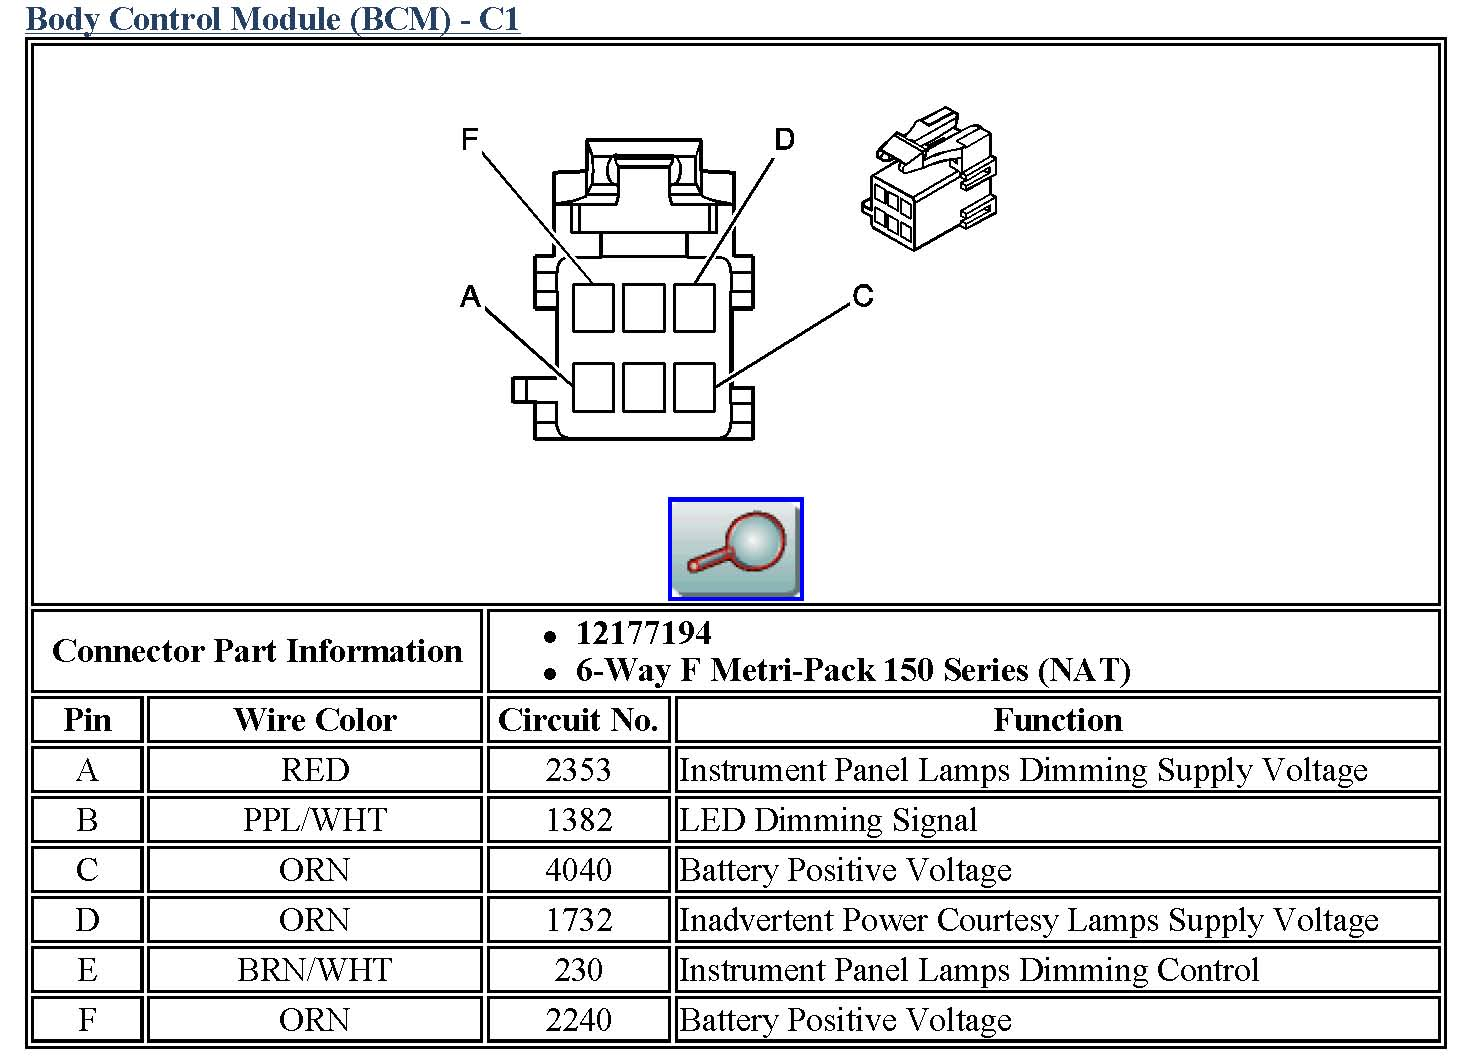 2006 Suburban Fuse Diagram Trusted Wiring Diagrams For 2008 Chevy Bcm Basics 101 03 06 Pt Cruiser Box